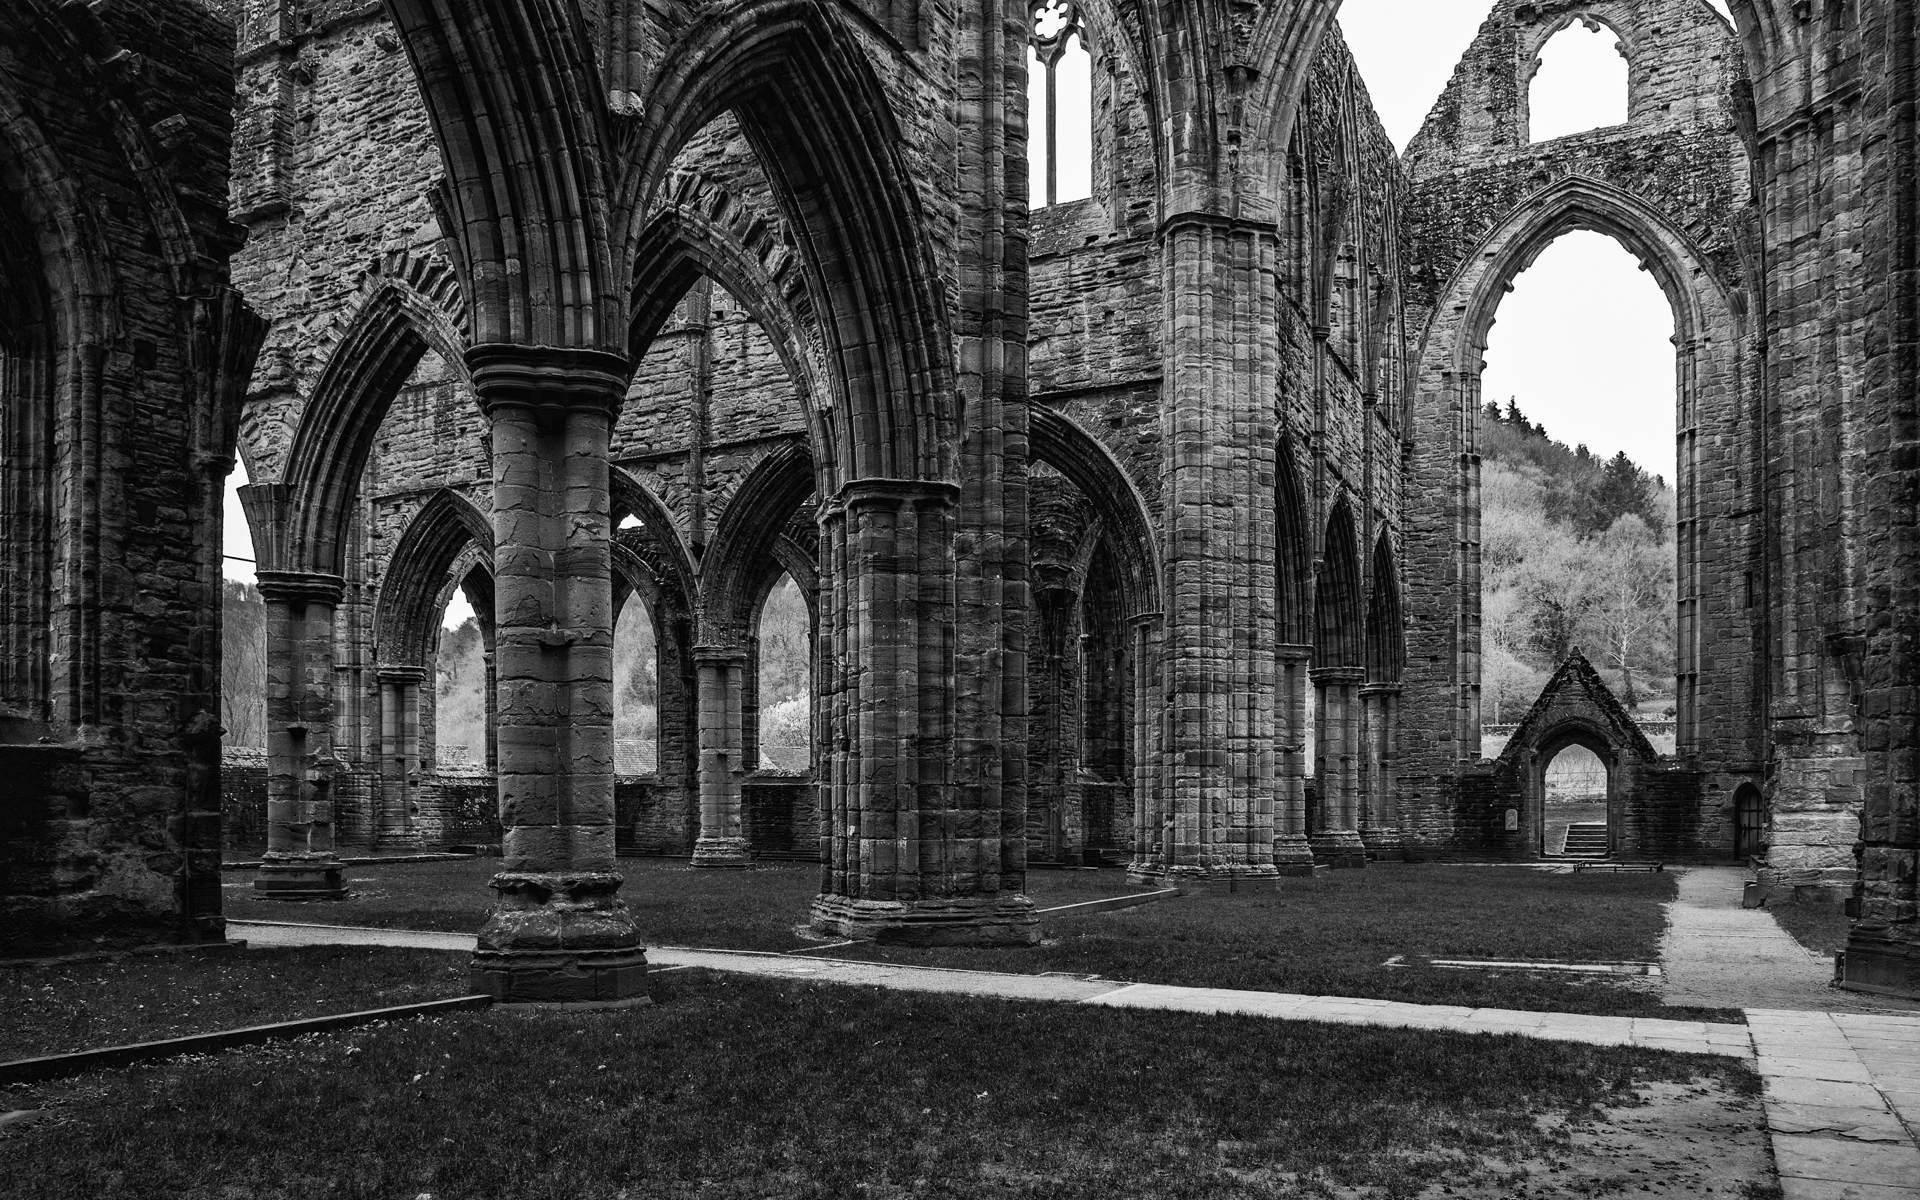 Inside the Abbey - this might be my favourite shot from the visit.